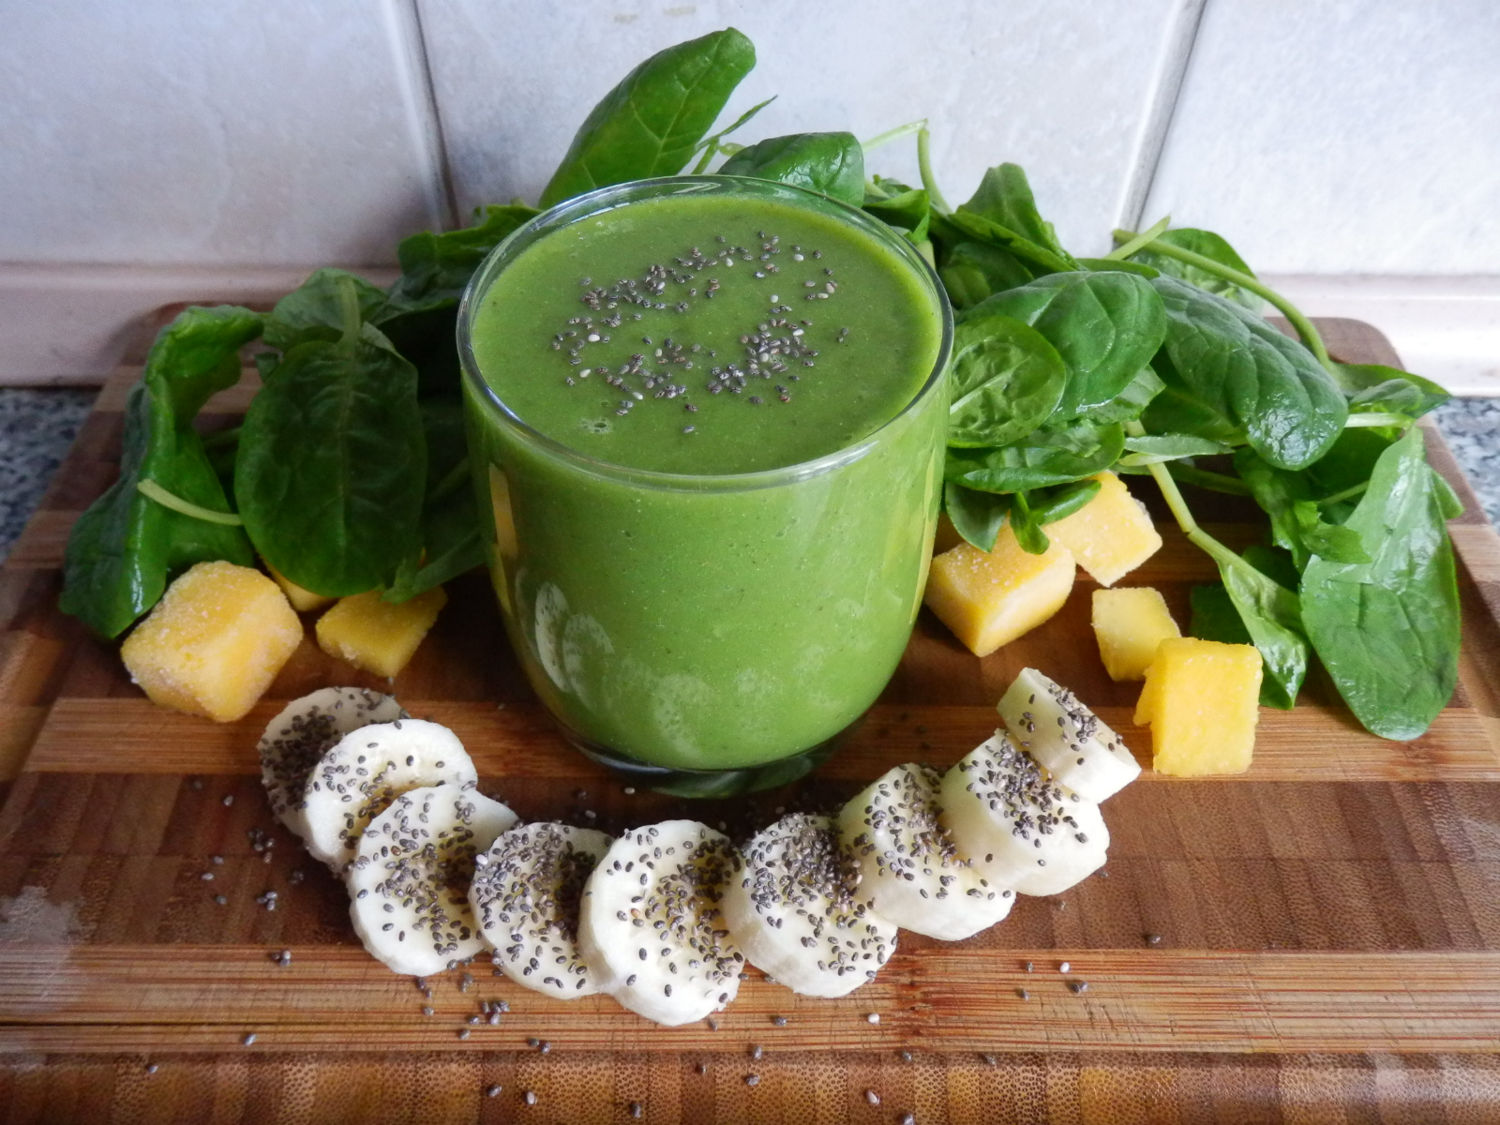 Banana, Baby Spinach & Chia Seed Smoothie